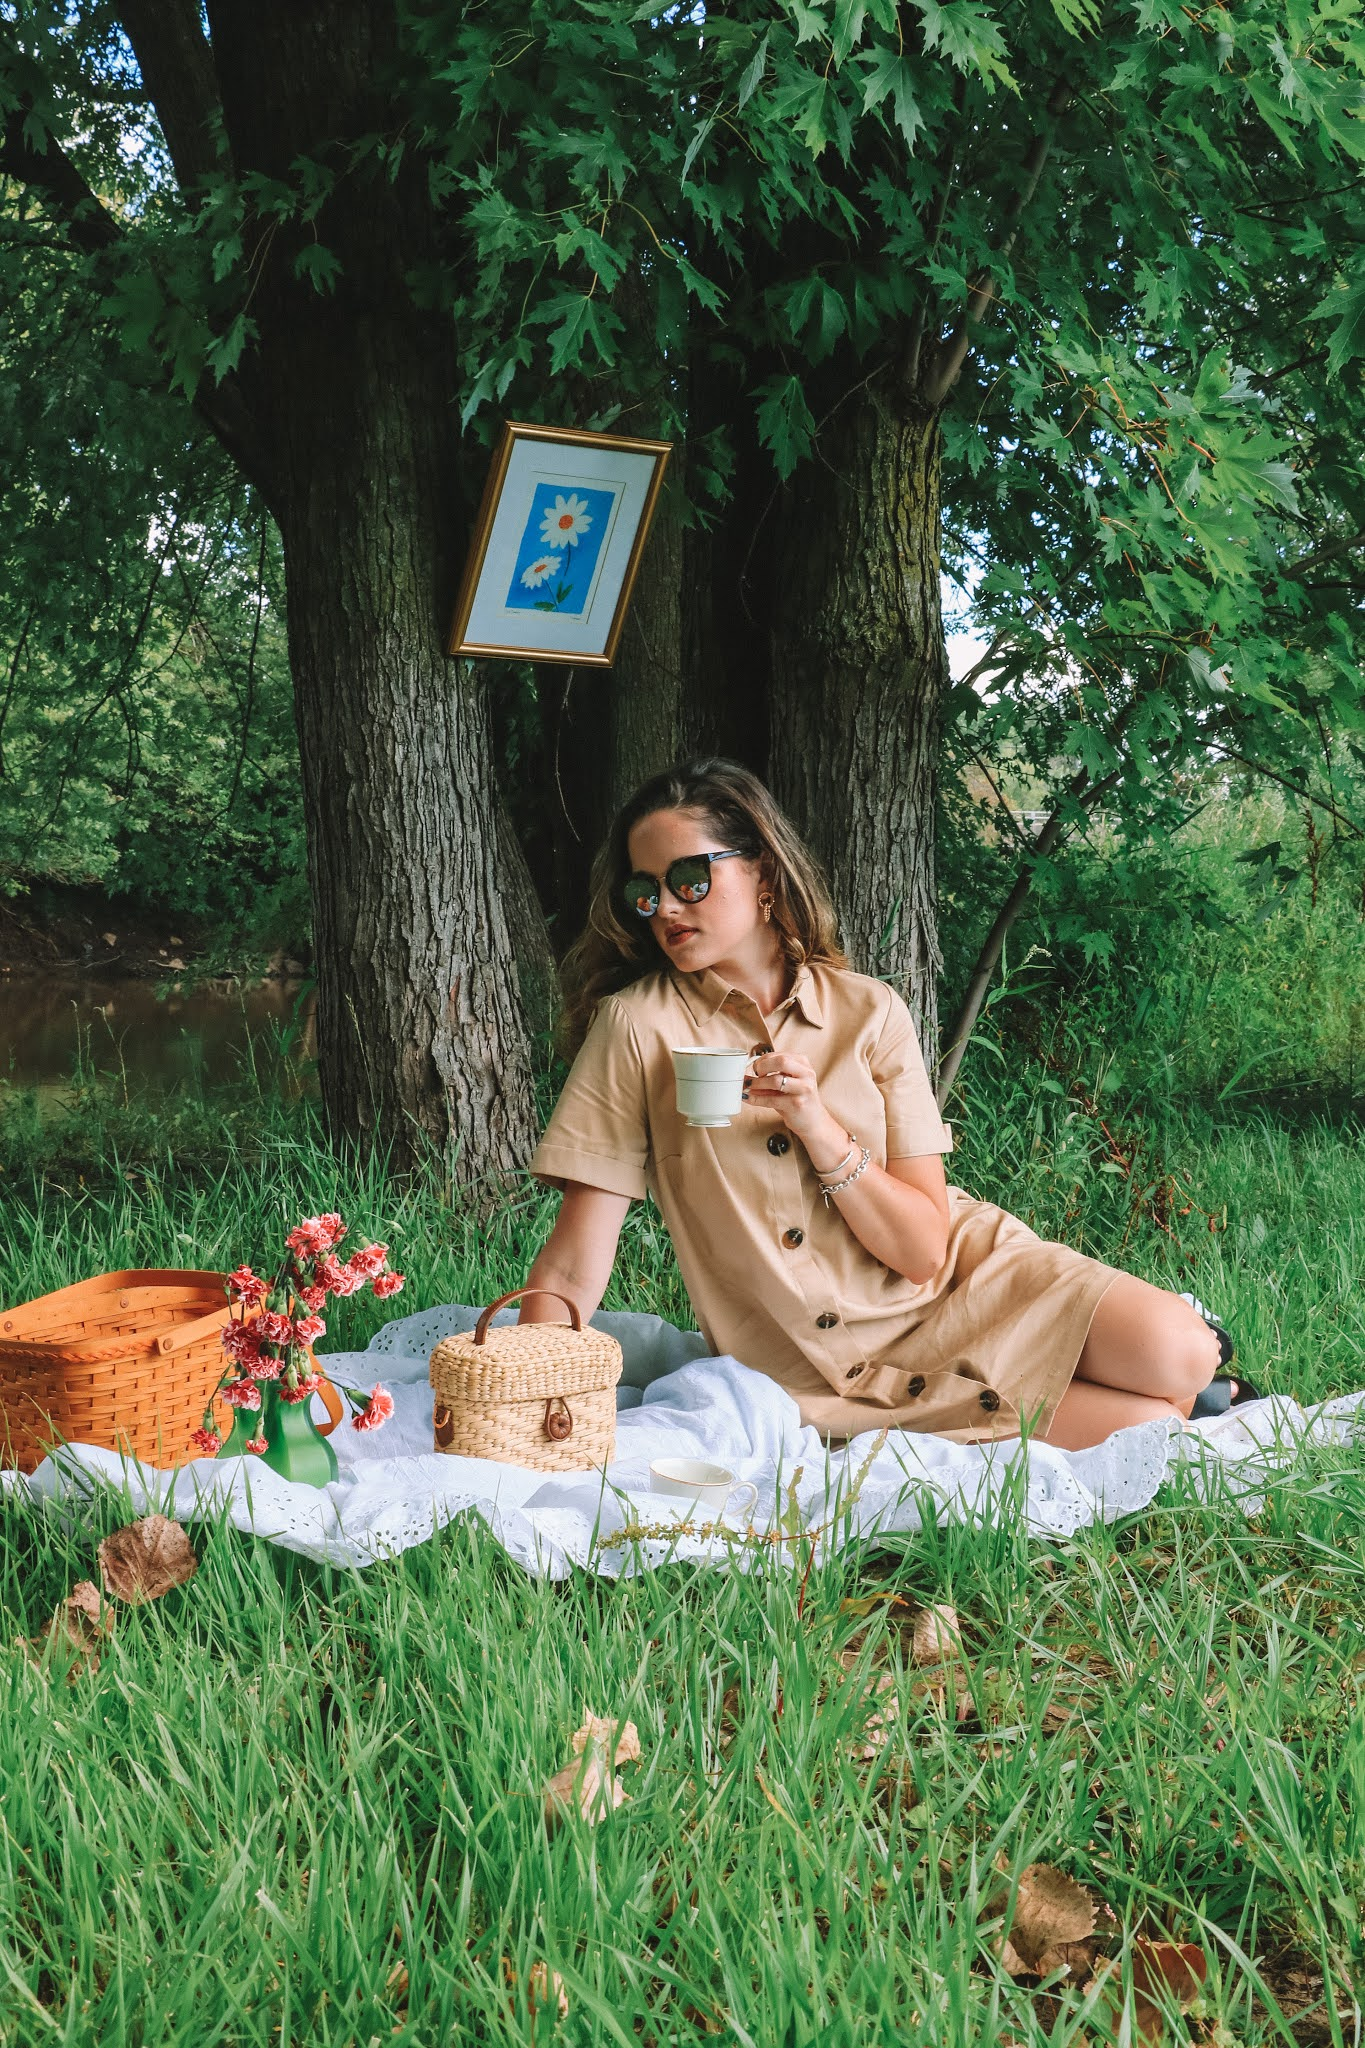 Fashion blogger Kathleen Harper having a picnic in the forest for her cottagecore aesthetic.